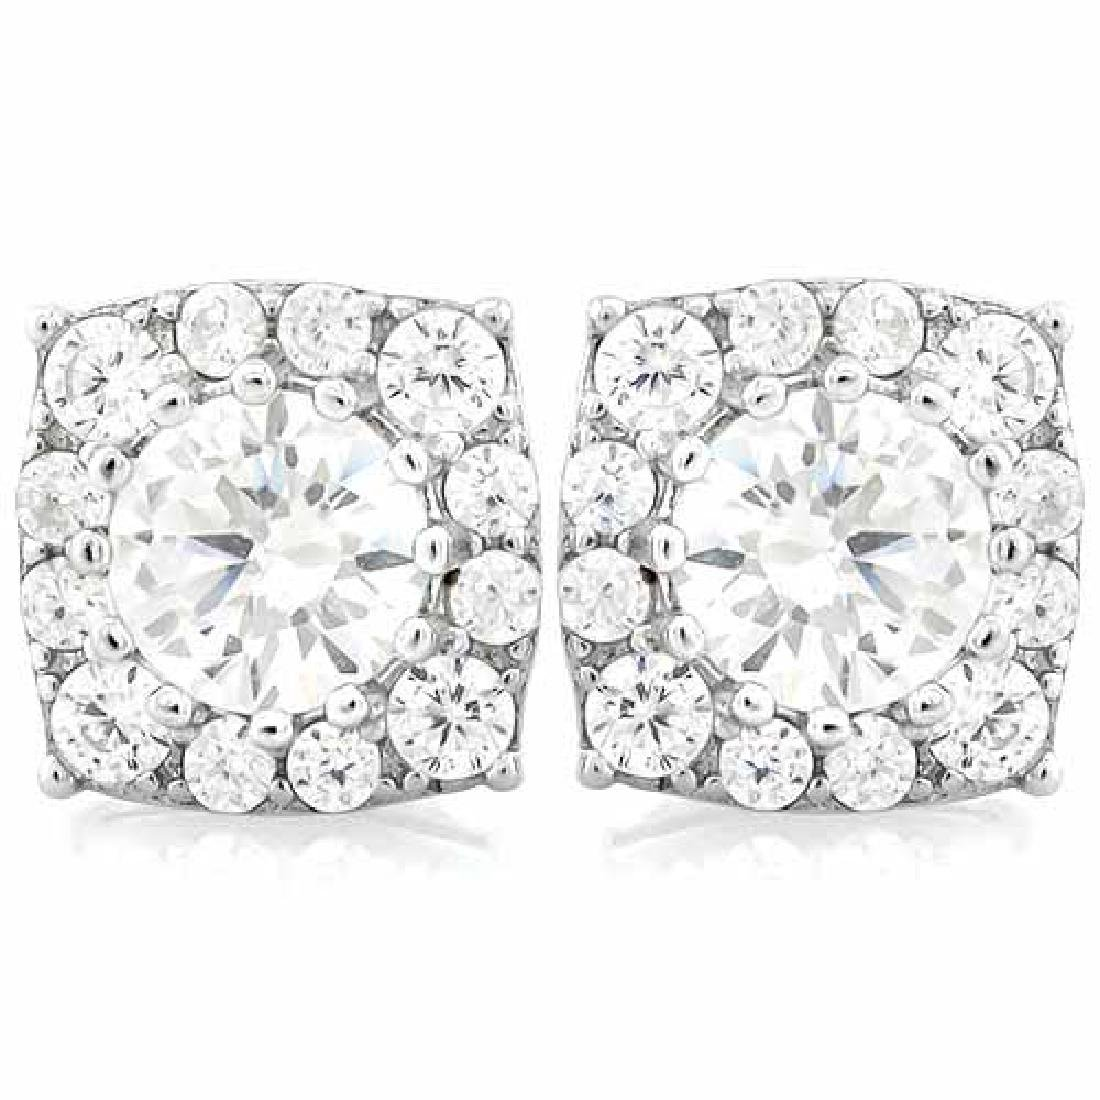 2 2/3 CARAT (28 PCS) FLAWLESS CREATED DIAMOND 925 STERL